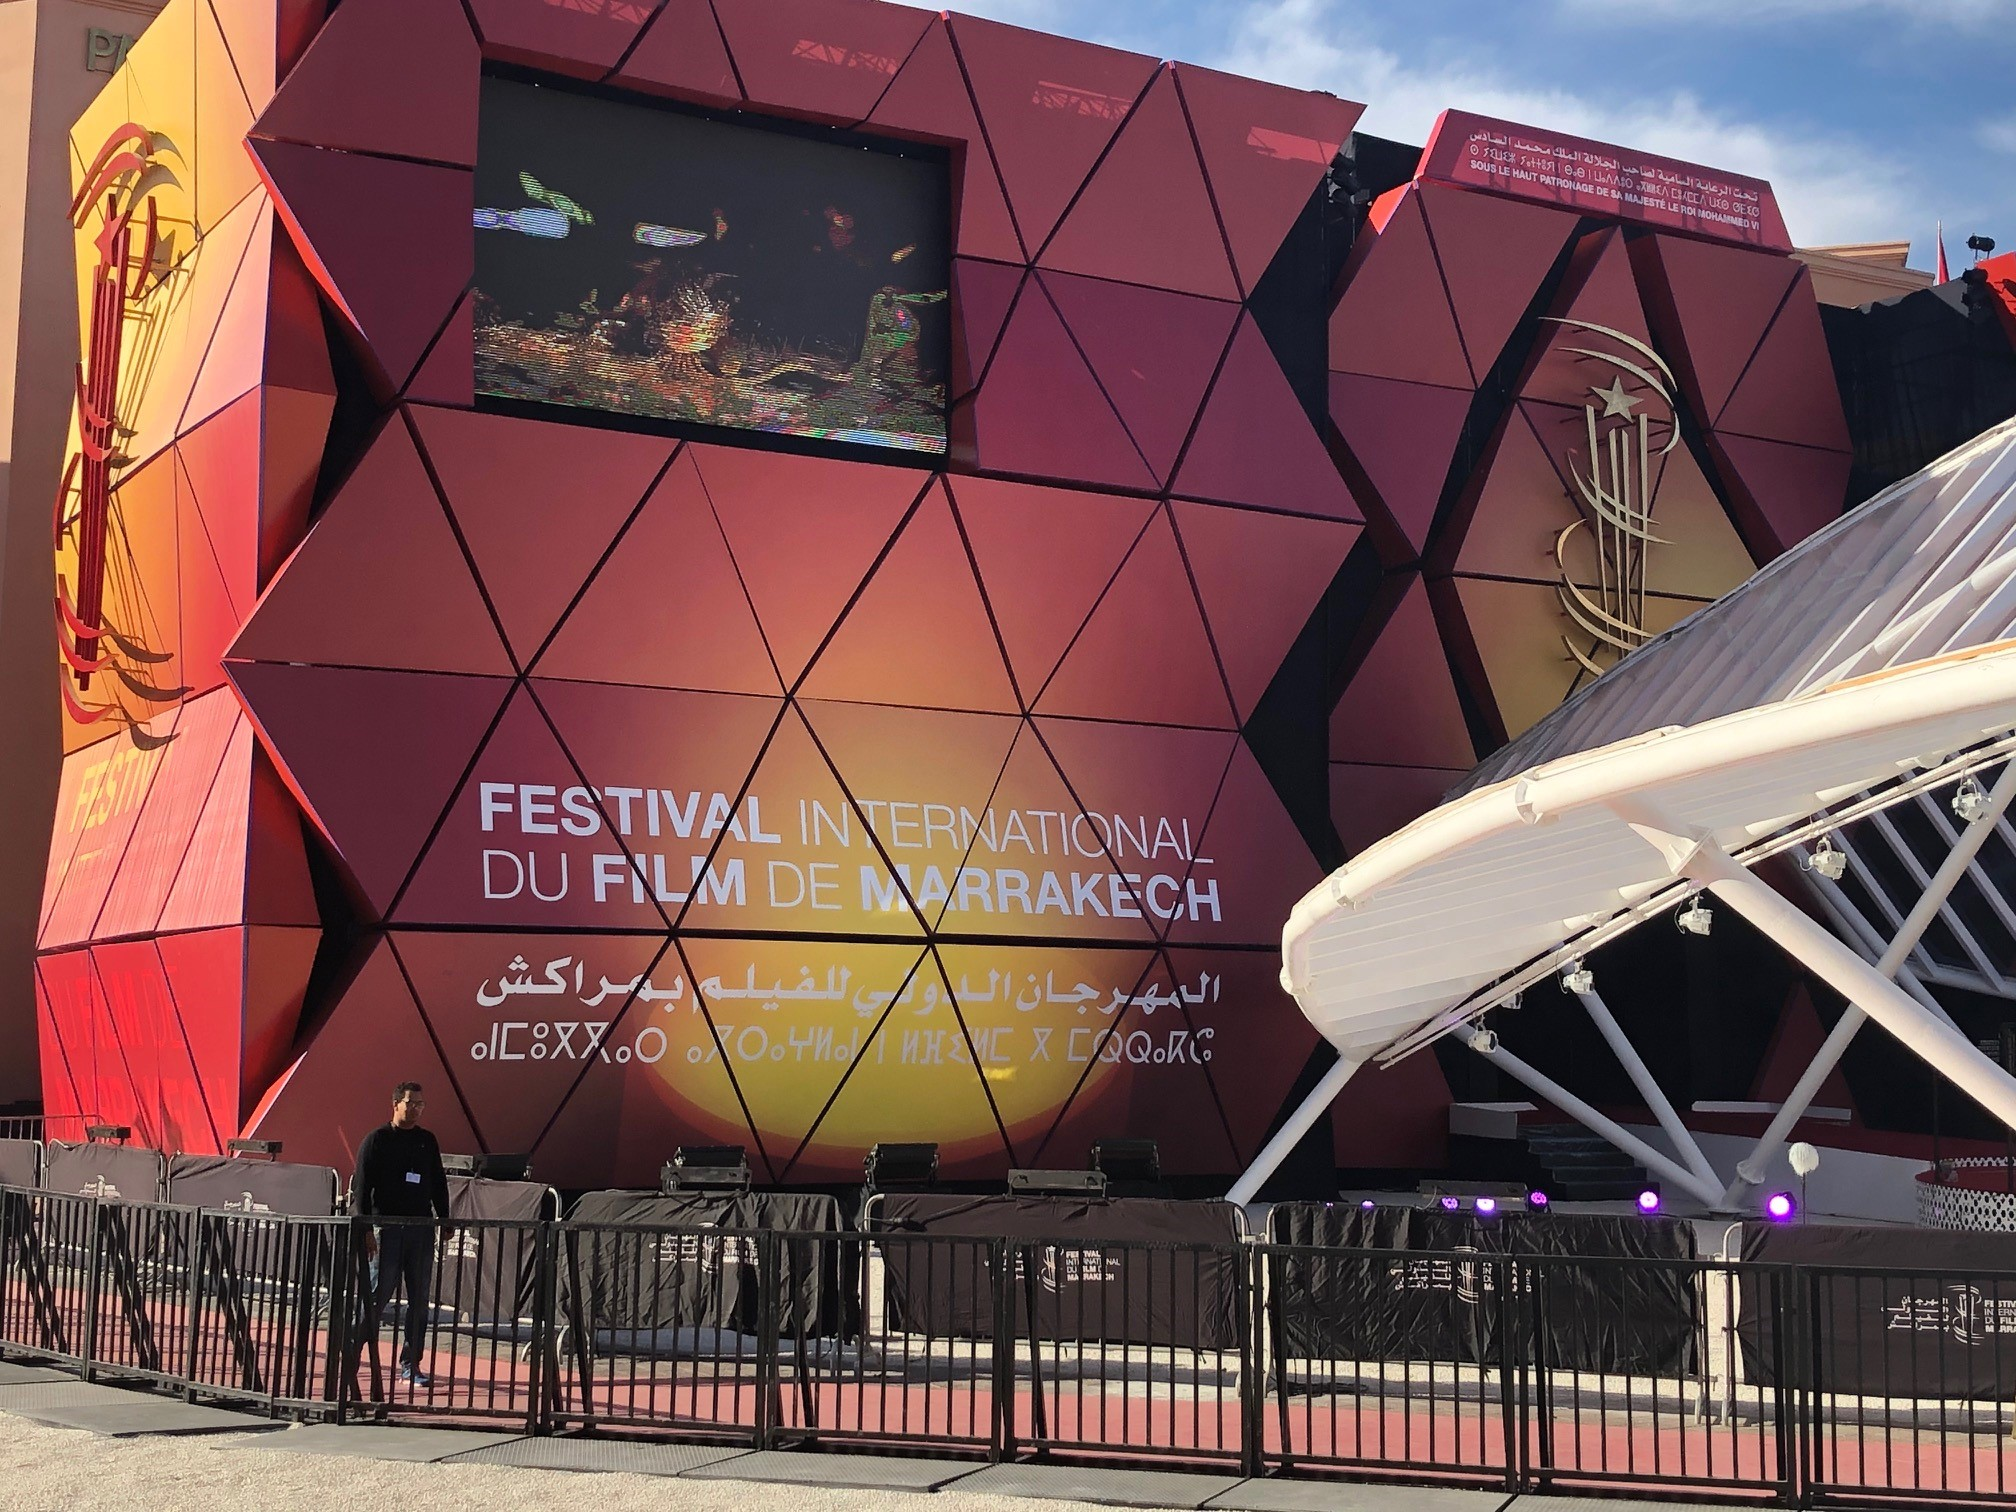 The 18th Marrakech International Film Festival in the central Moroccan city is held from November 29 to December 7 this year